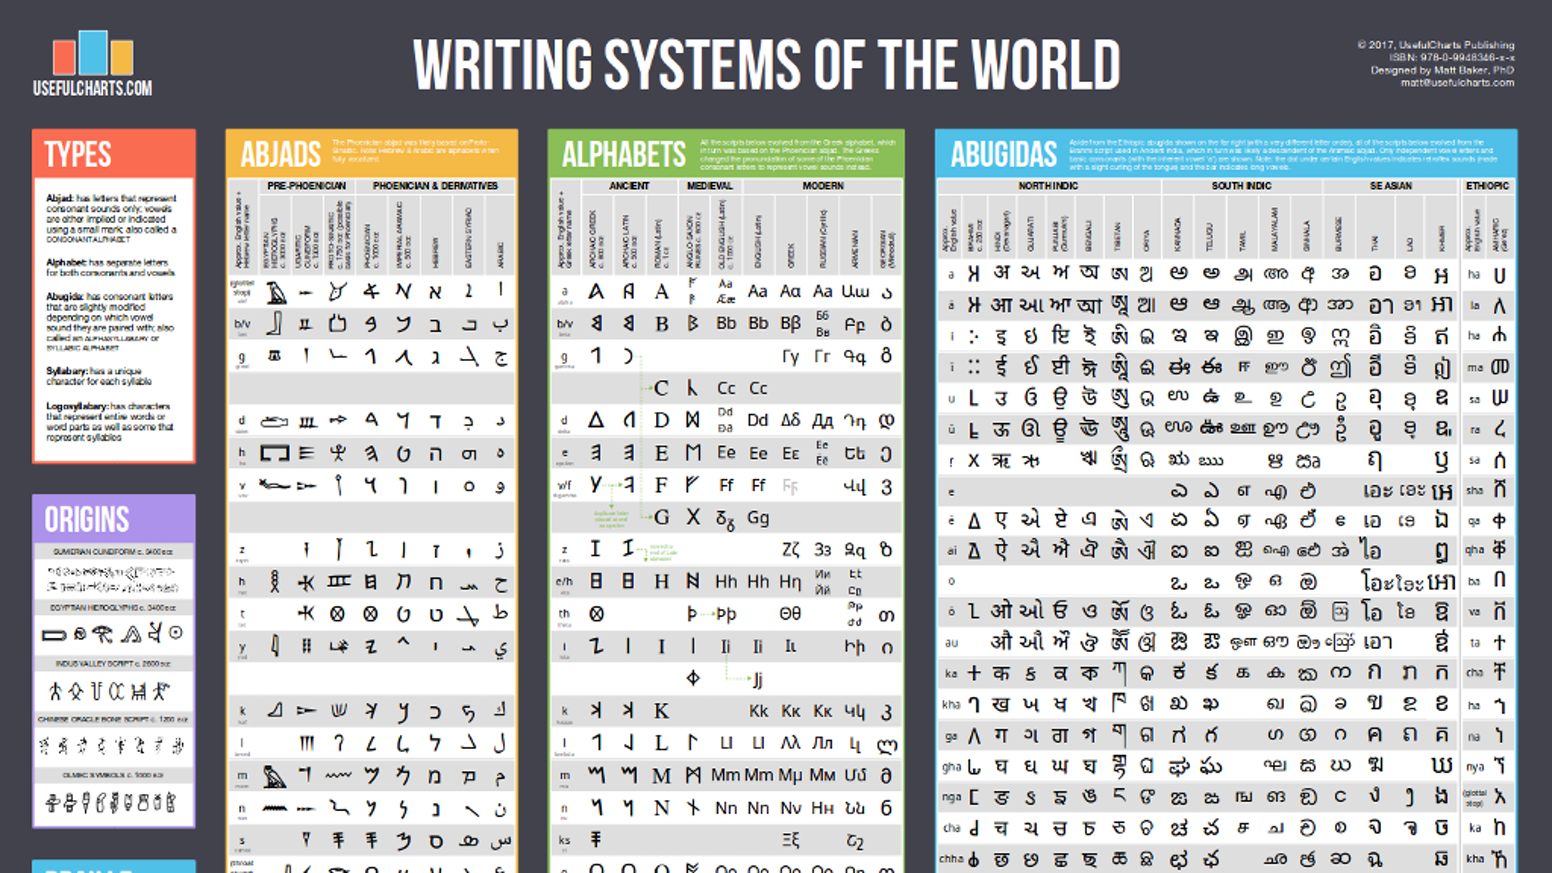 2000+ symbols. 51 writing systems. 1 wallchart.